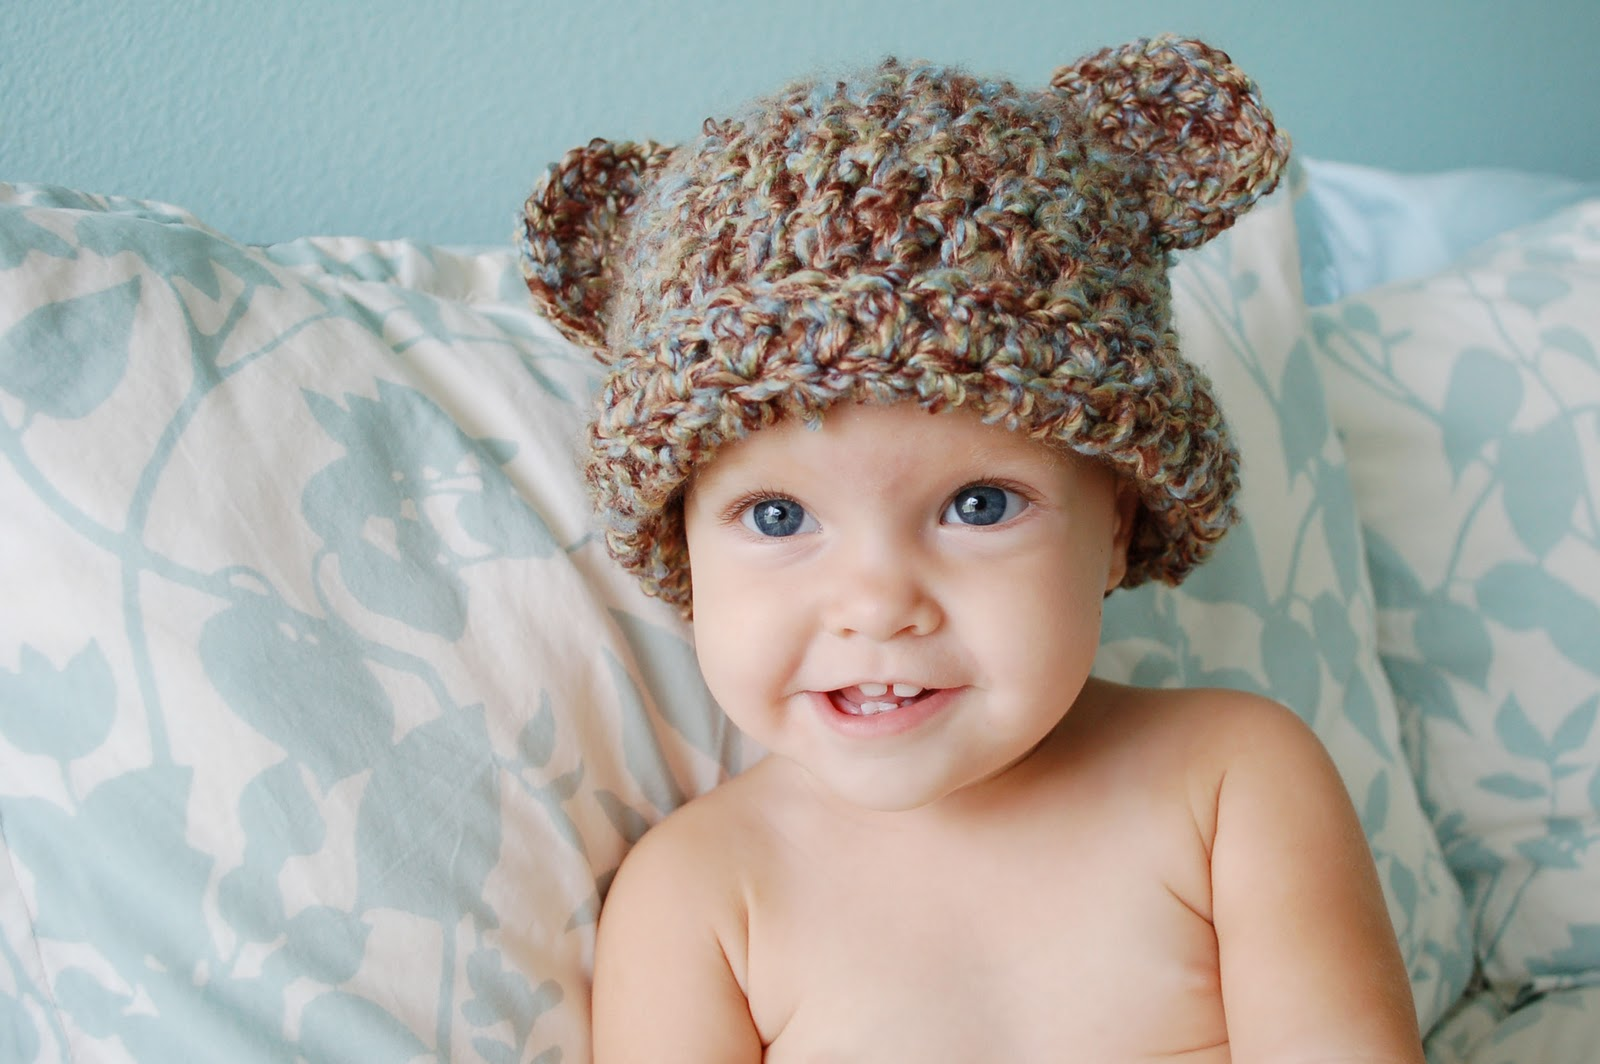 Alli Crafts: Free Pattern - Fuzzy Bear Hat With Ears - 9 ...